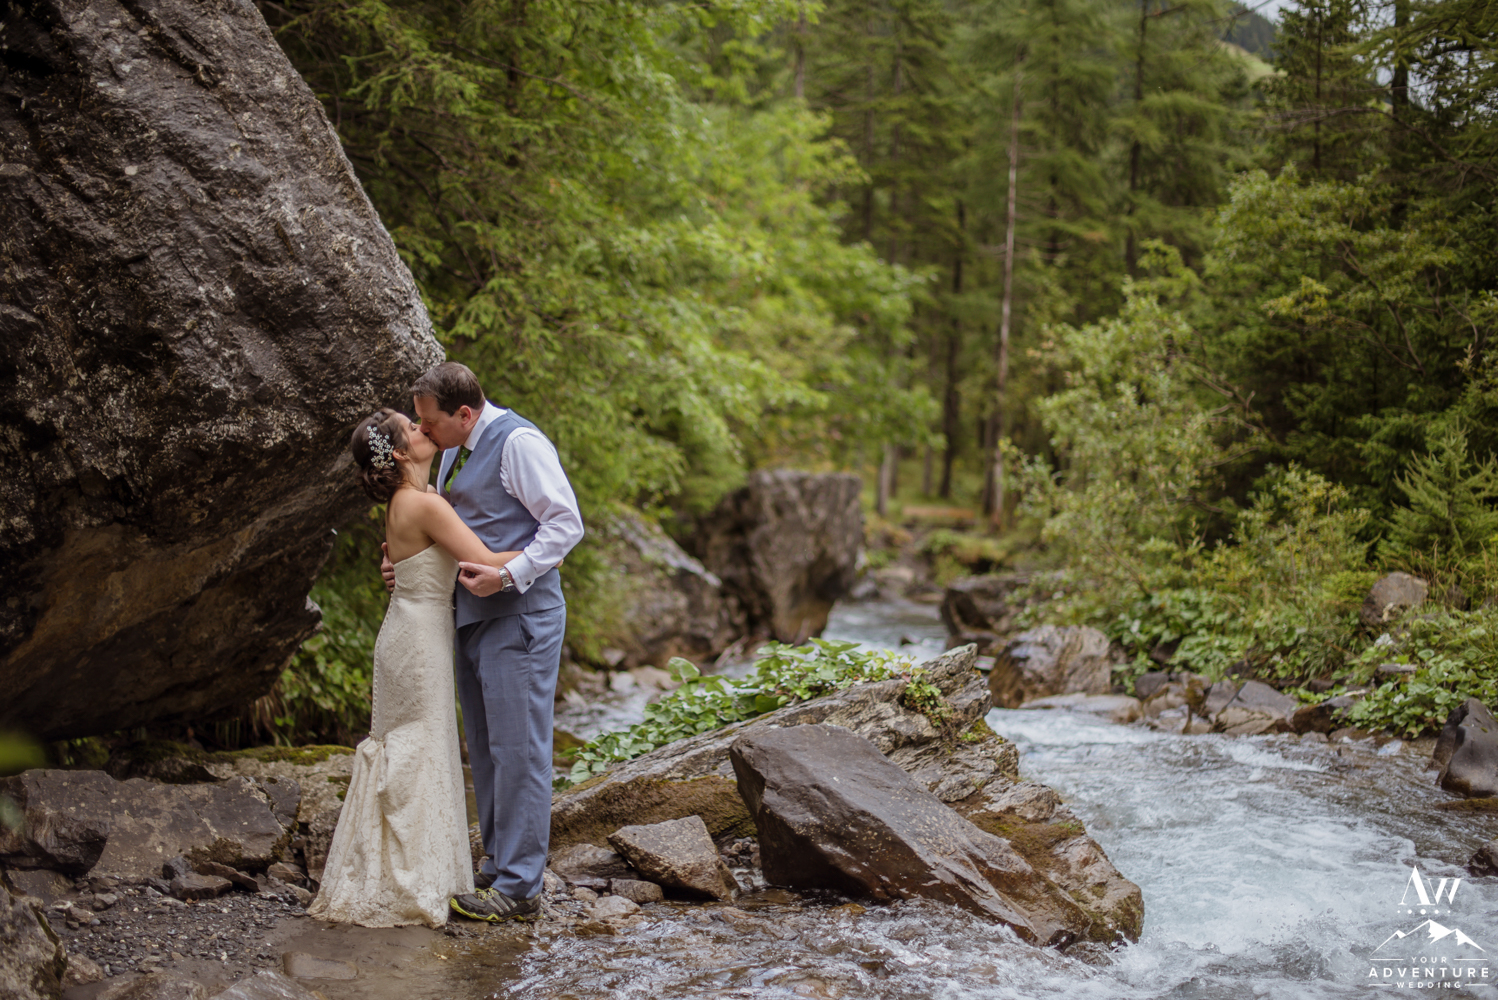 Switzerland Adventure Wedding Couple Kissing